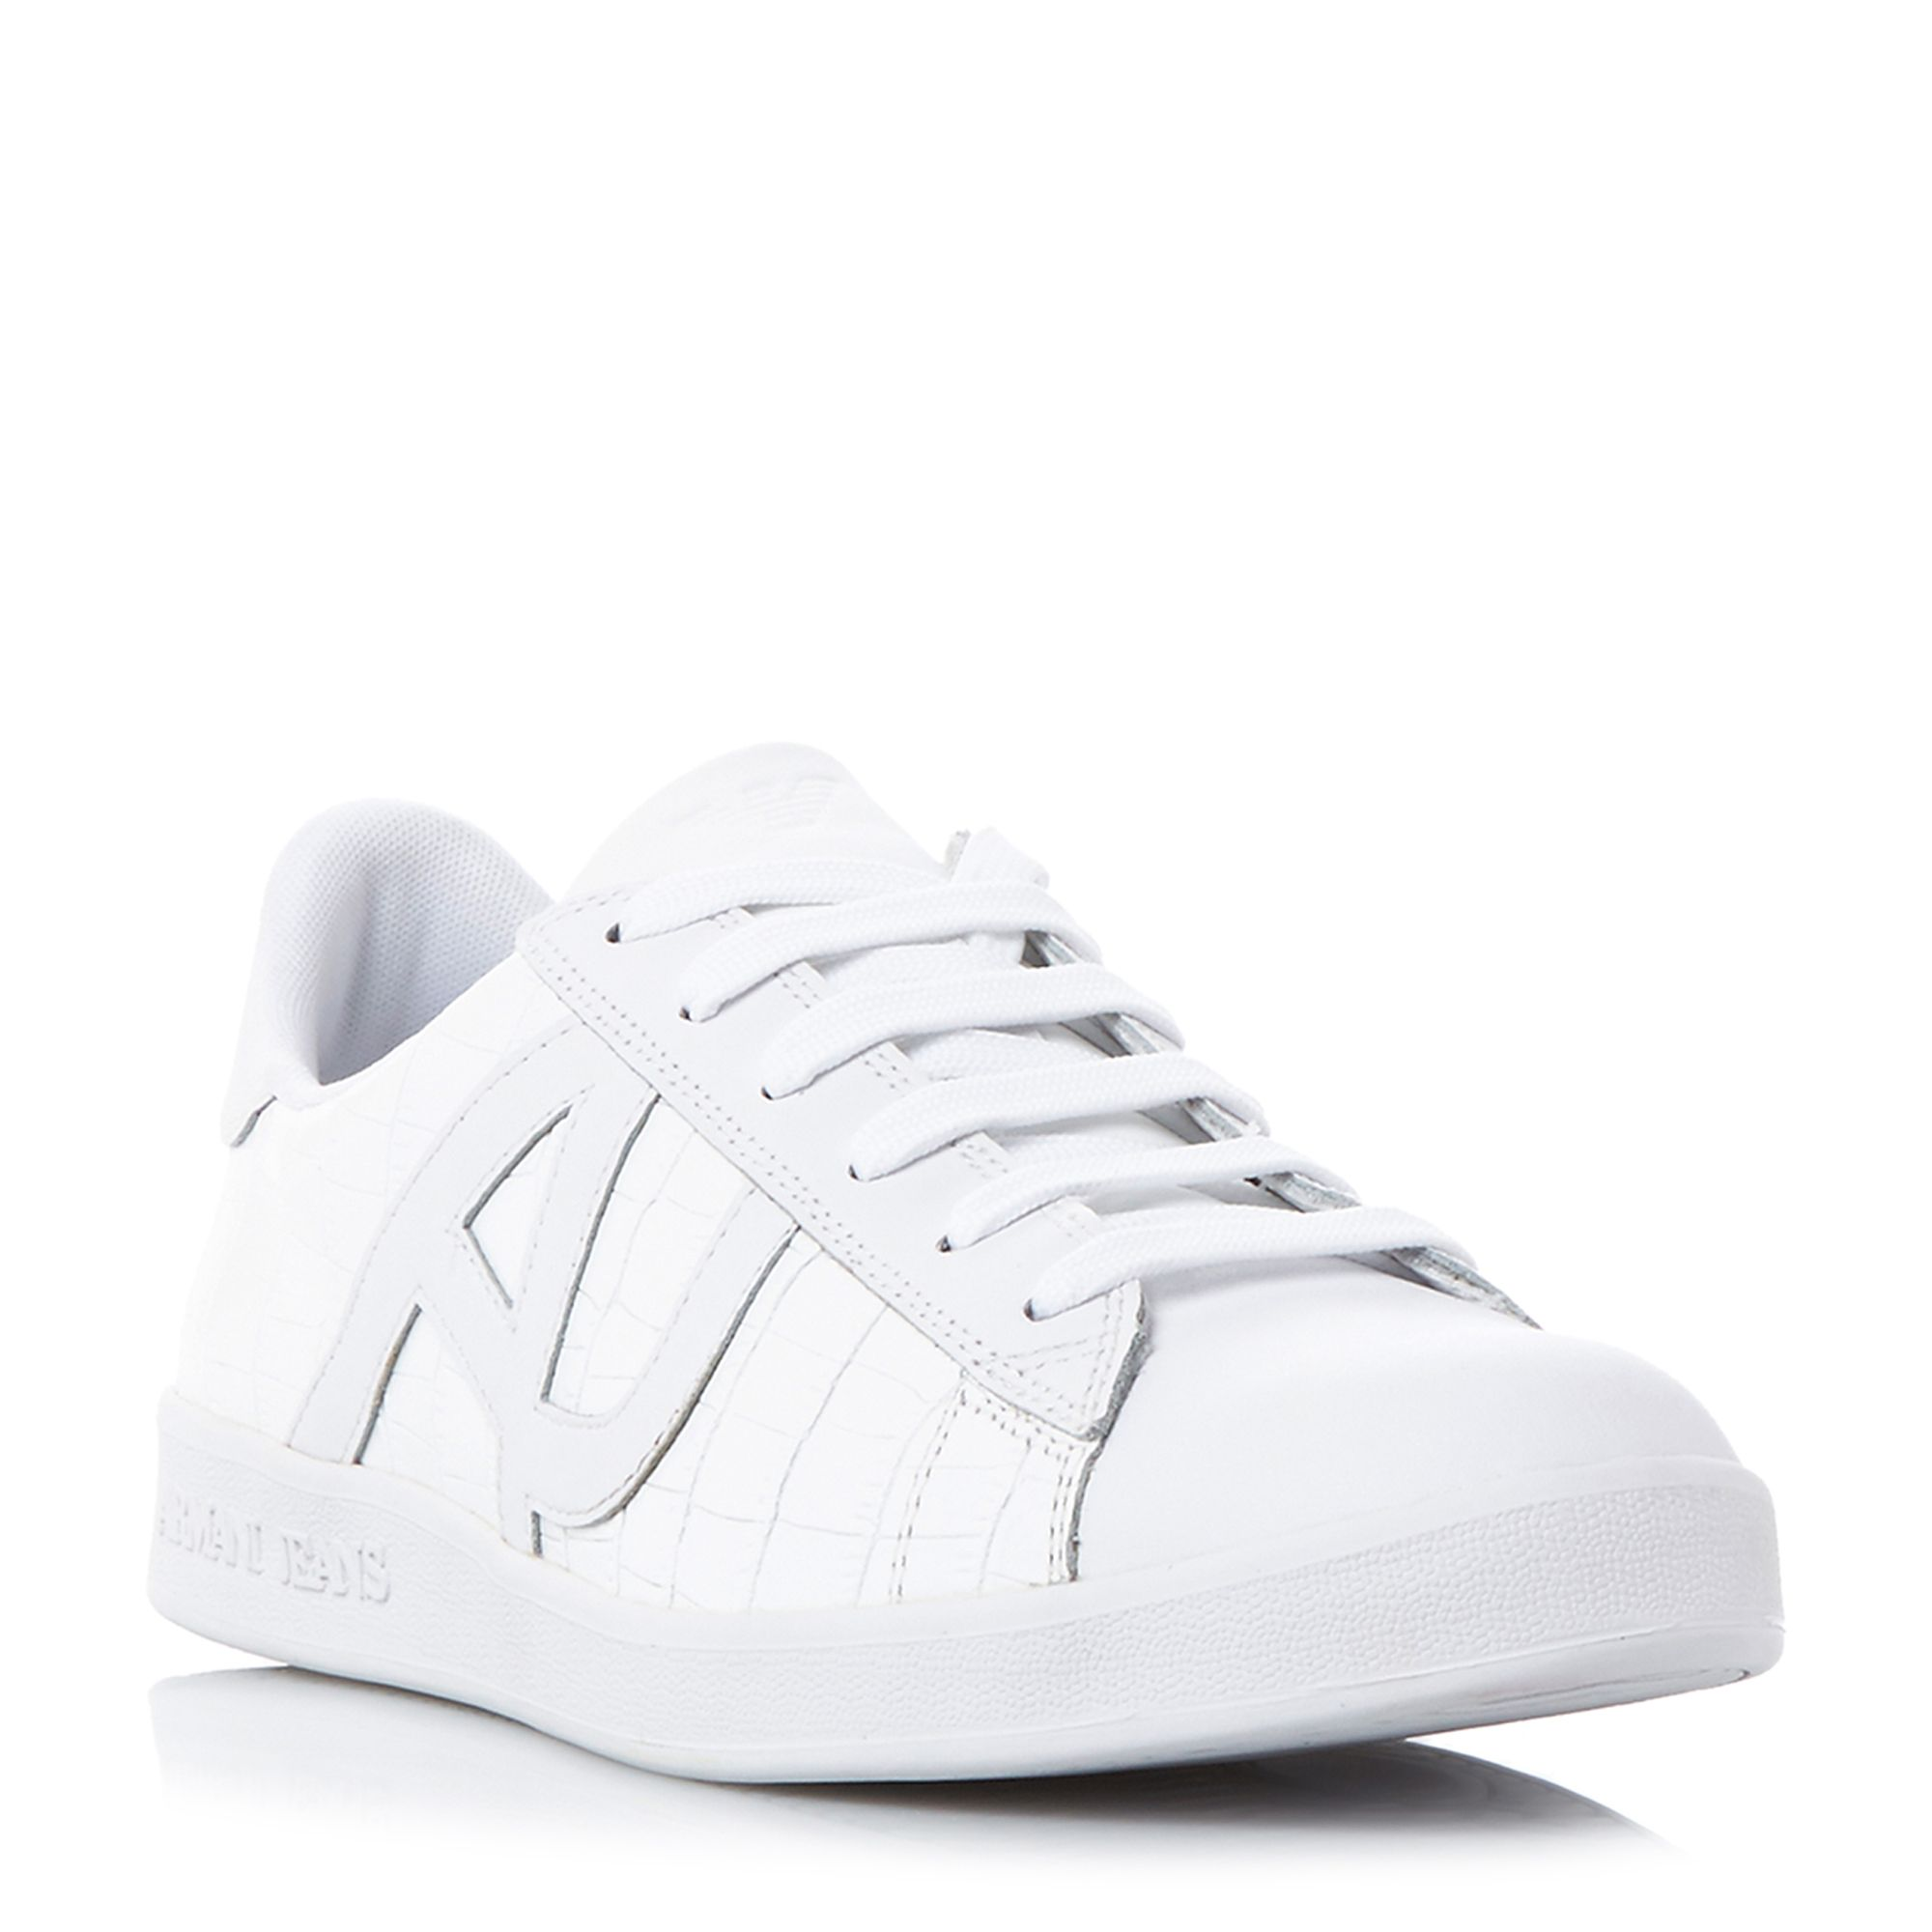 Armani Jeans 0935565 croco embossed trainers White